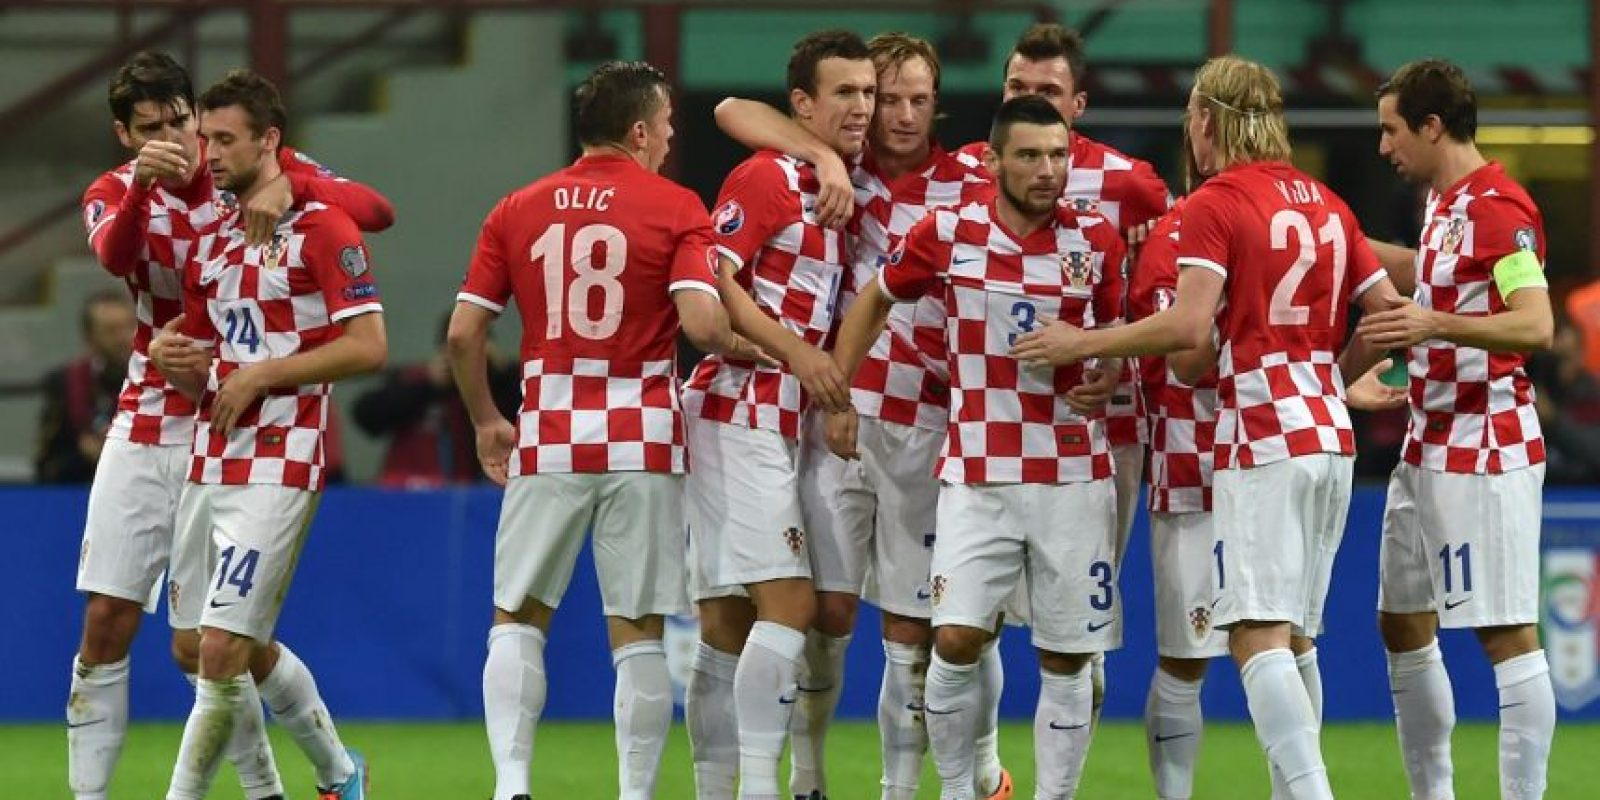 BOMBO 2: Croacia Foto: Getty Images